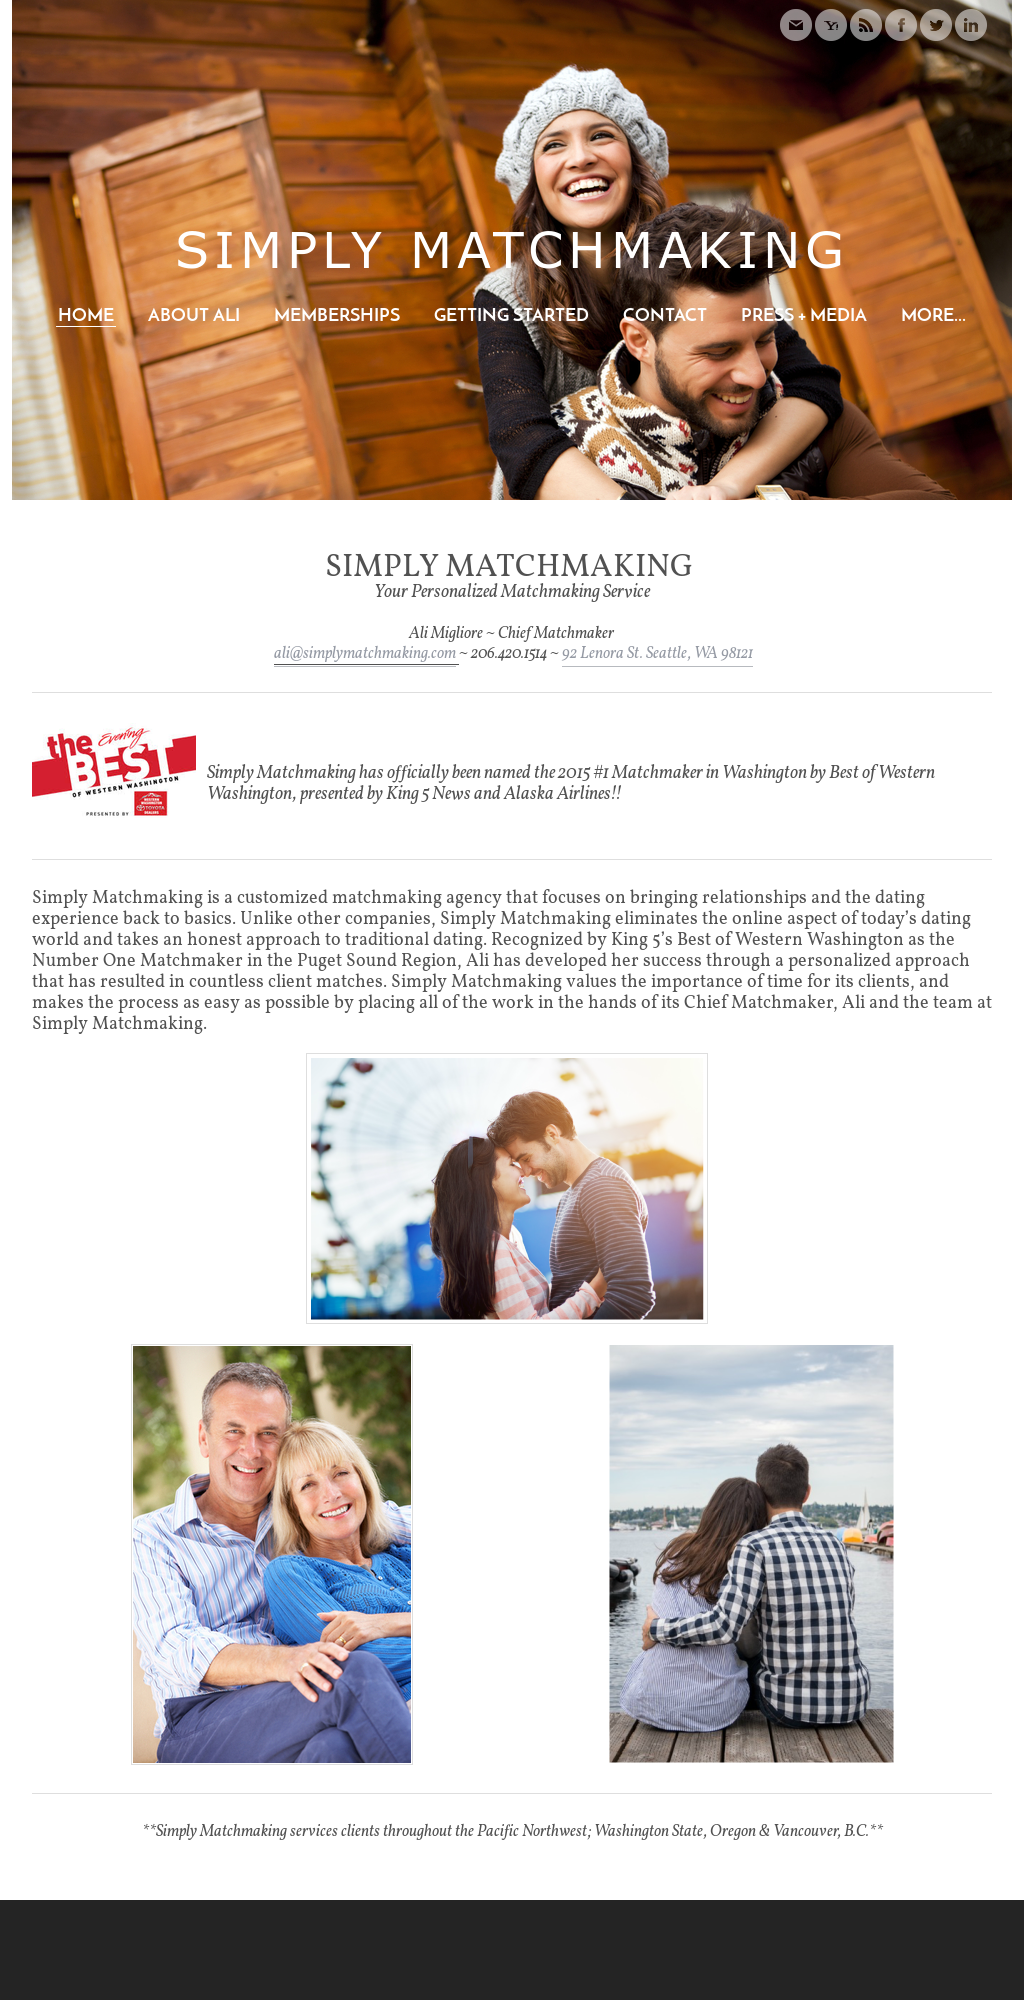 Die Firma Seattle matchmaking Company